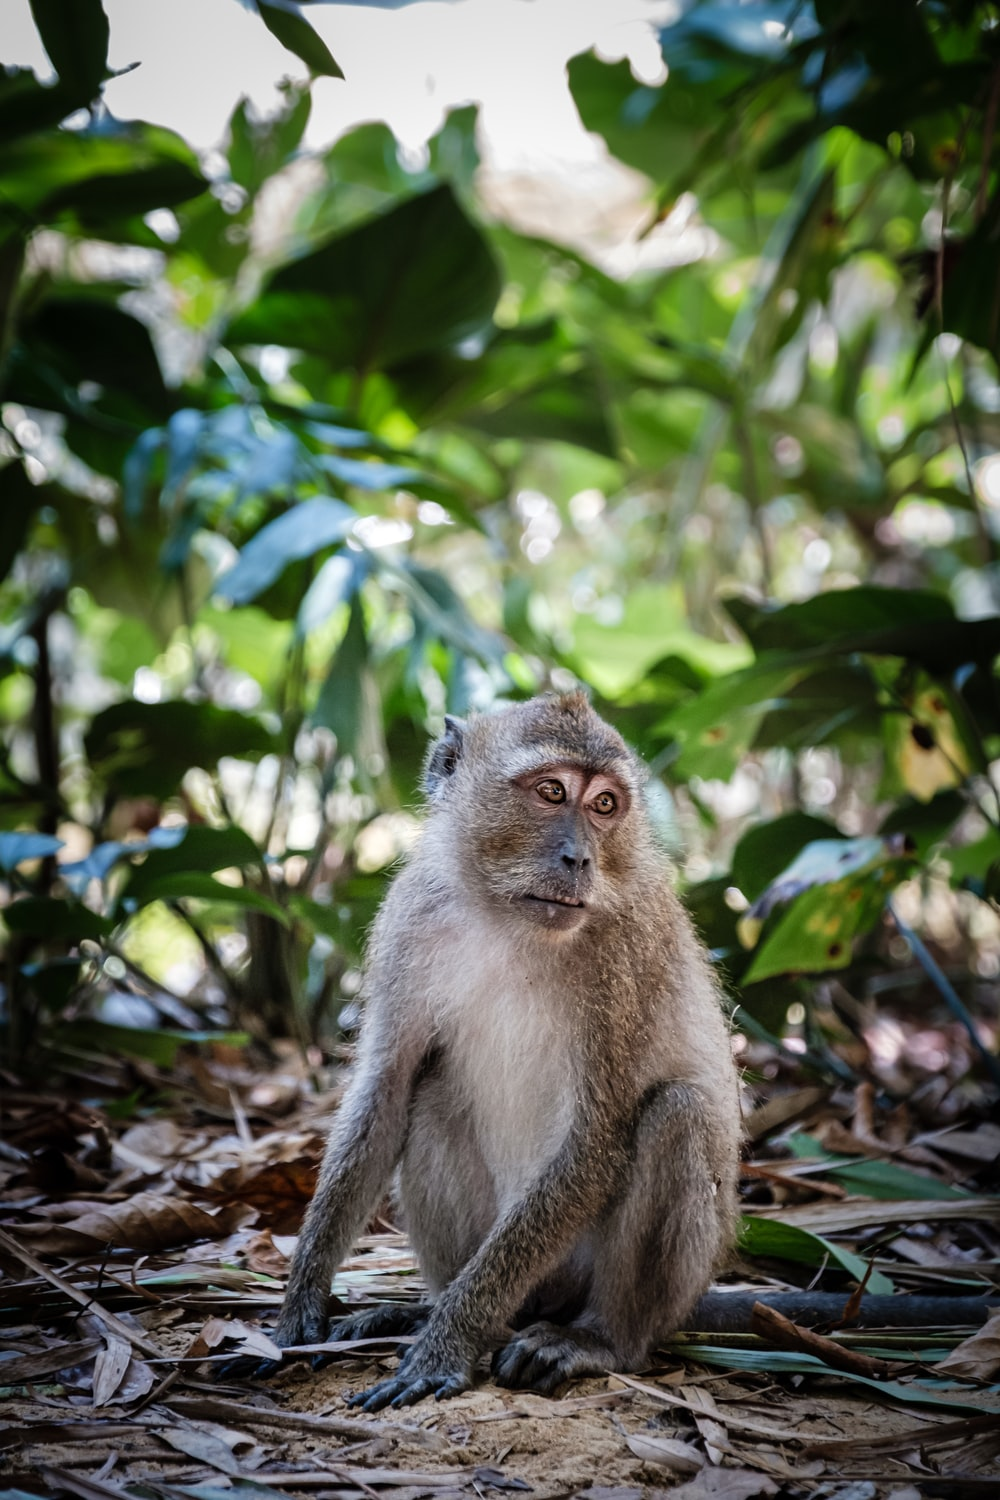 grey monkey on ground